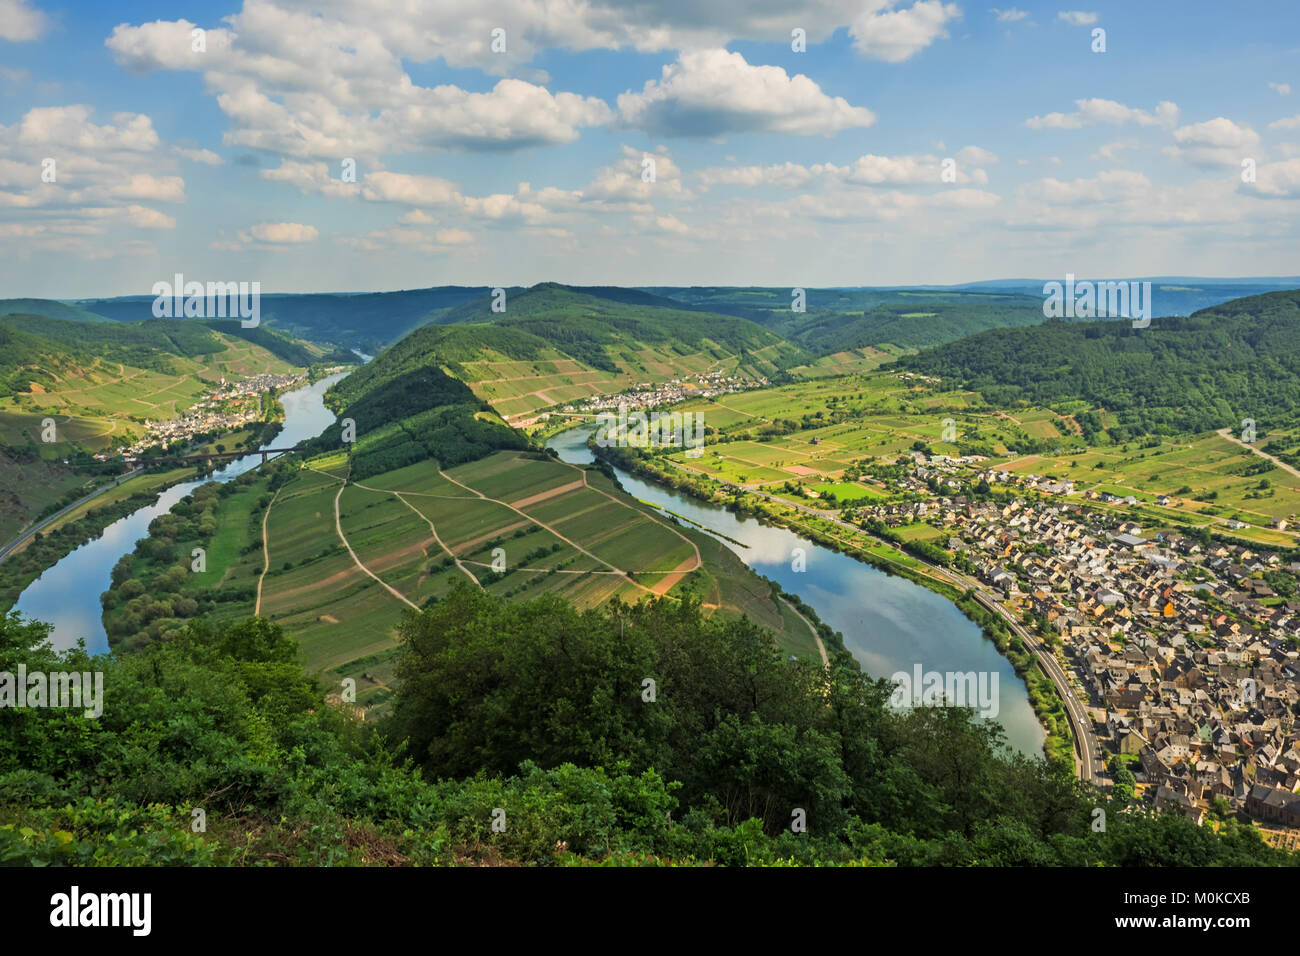 River Moselle loop at village Bremm - Stock Image